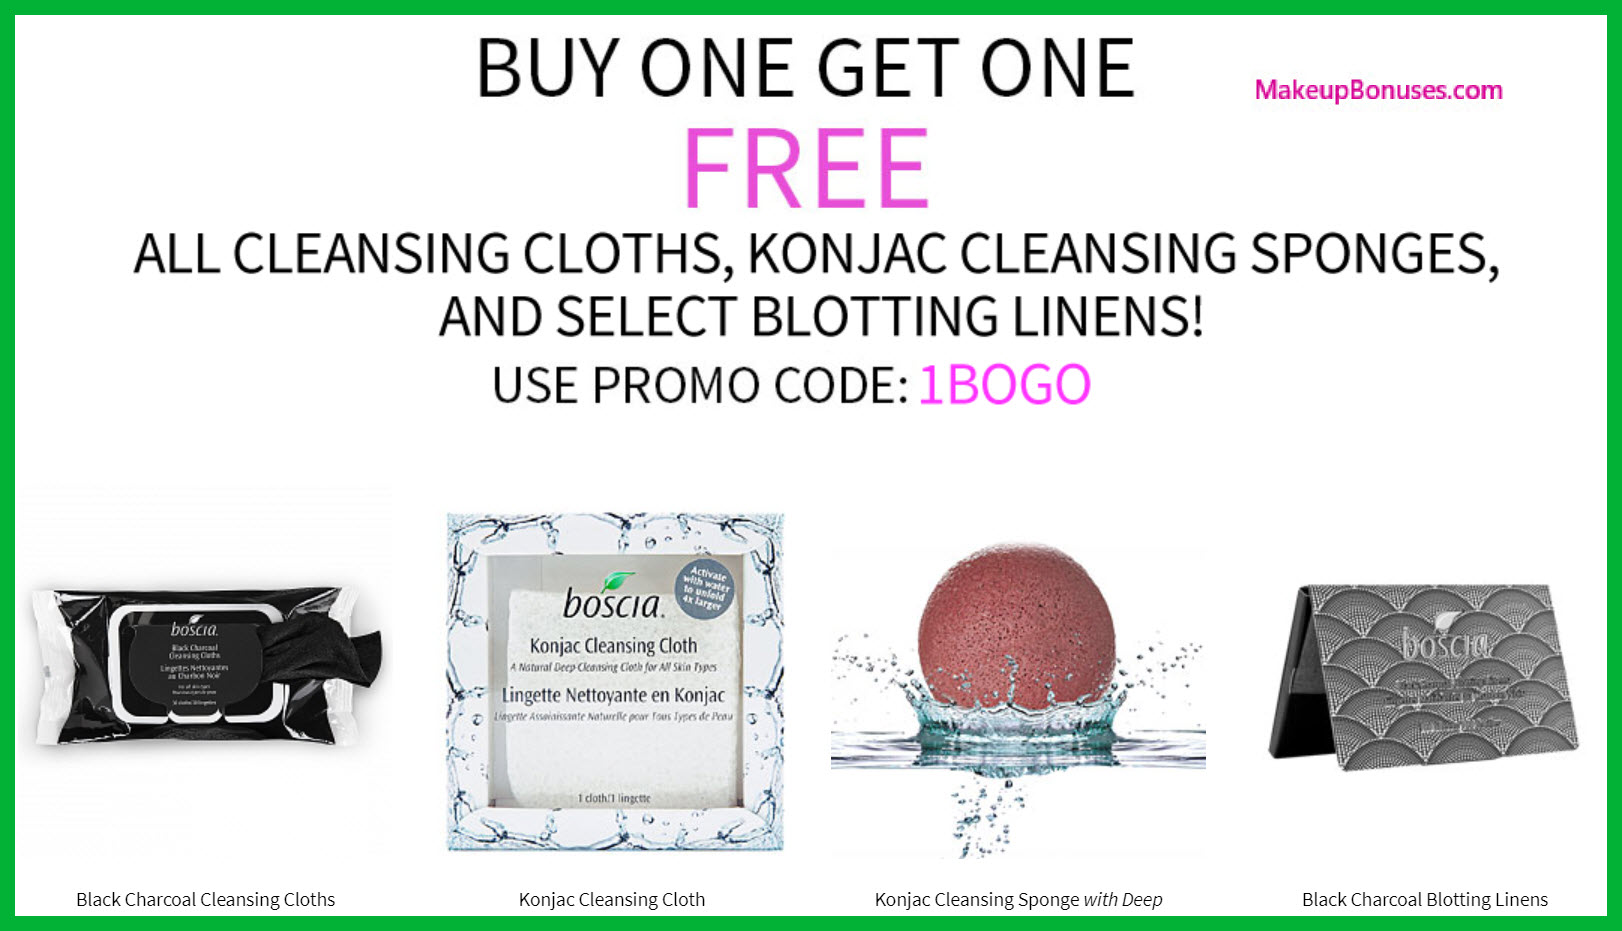 Receive a free 3-pc gift with your 3+ Cleansing Cloths, Konjac Sponges, Select Blotting Linens purchase